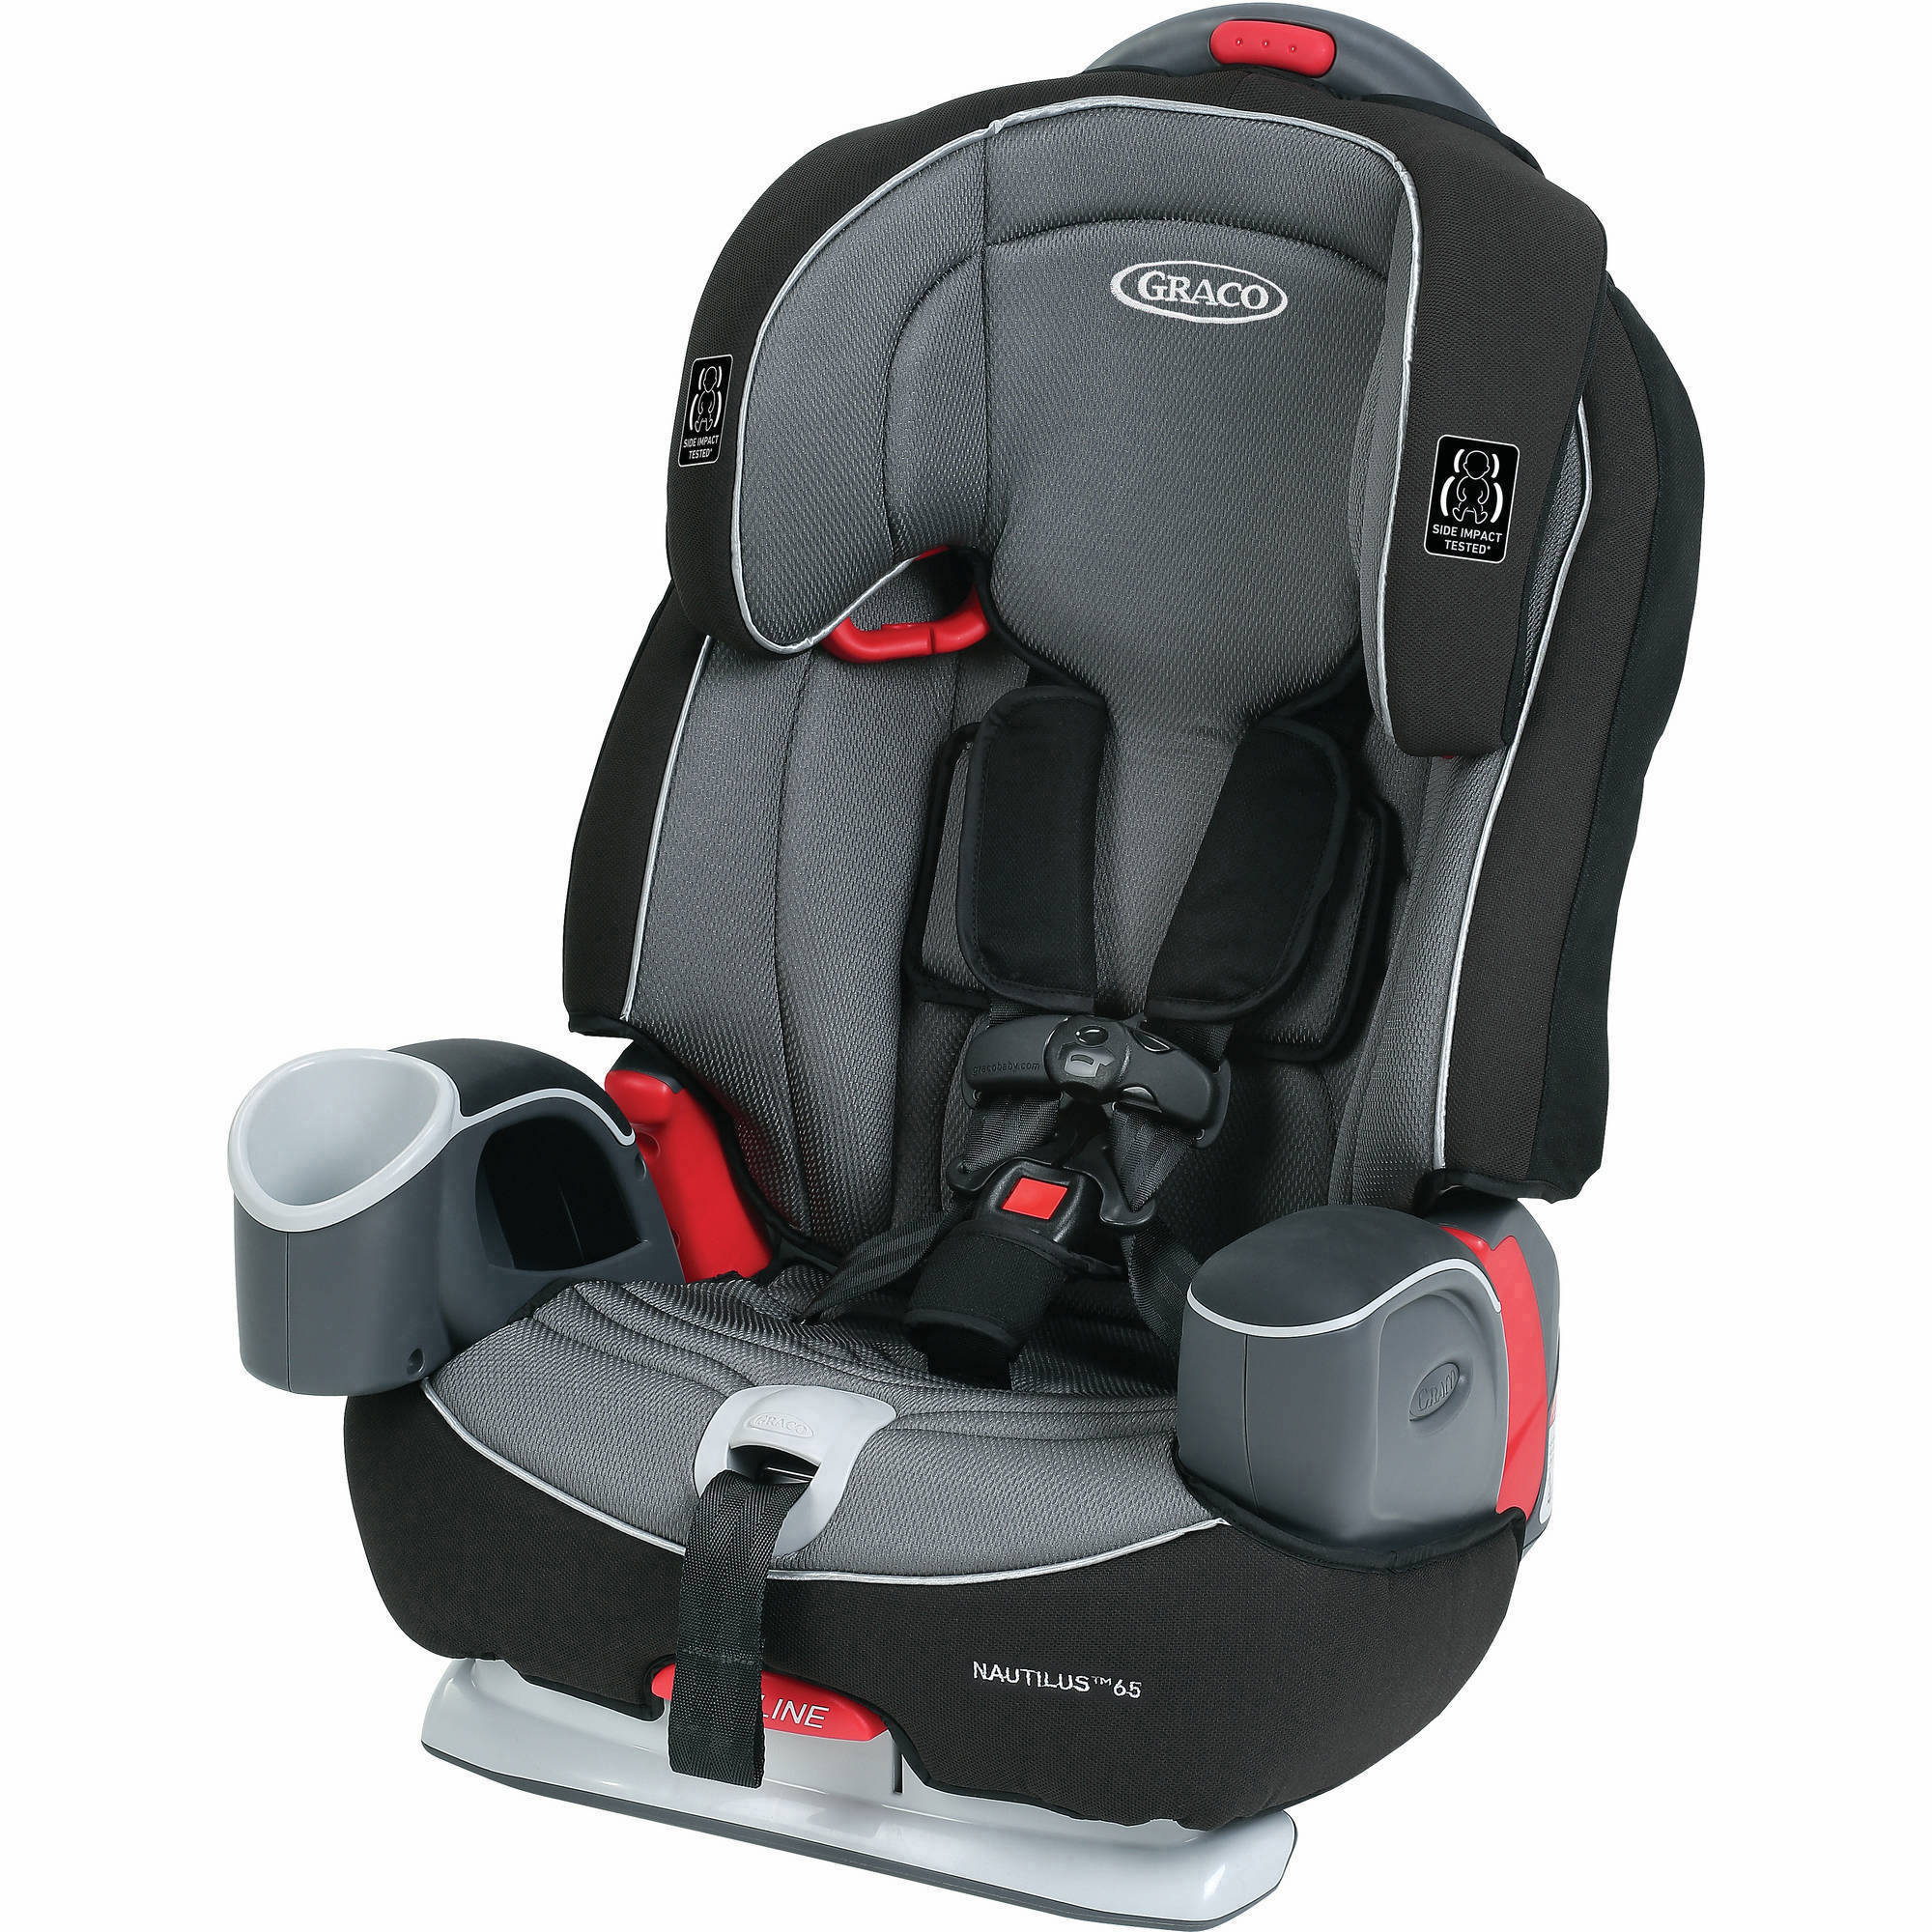 Graco Nautilus 3-in-1 Harness Booster Car Seat